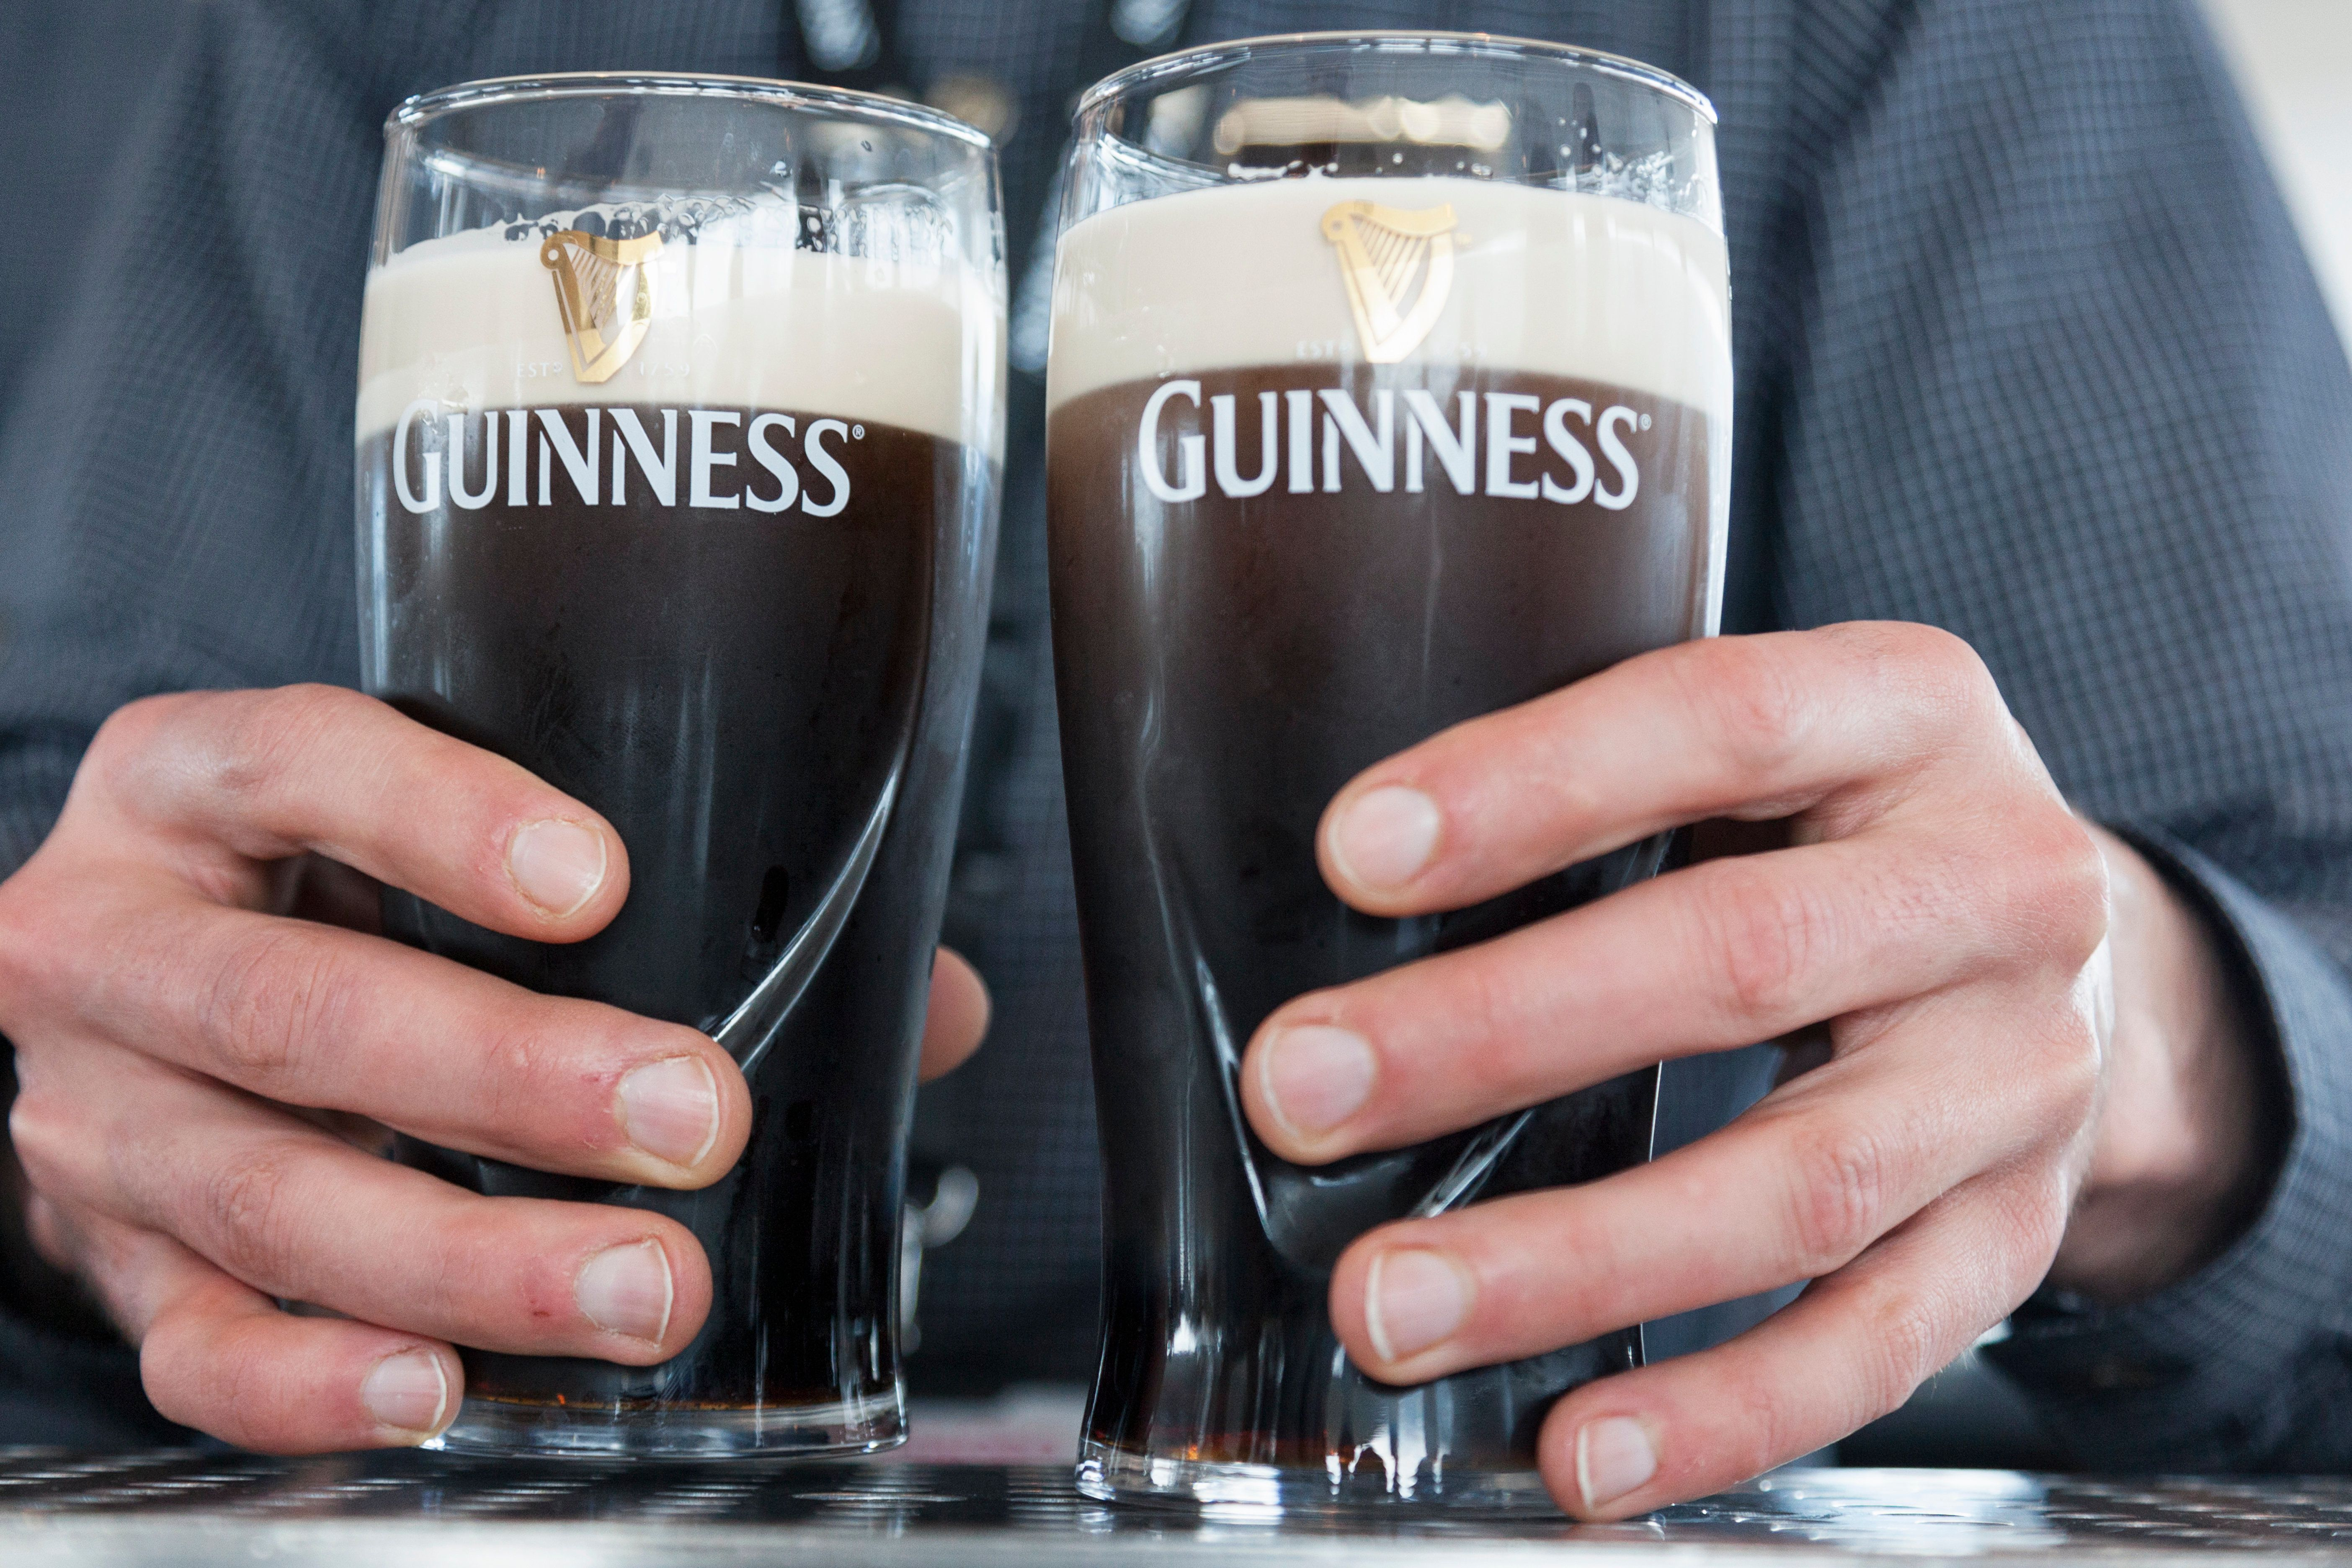 10 Things All English People Do On St Patrick's